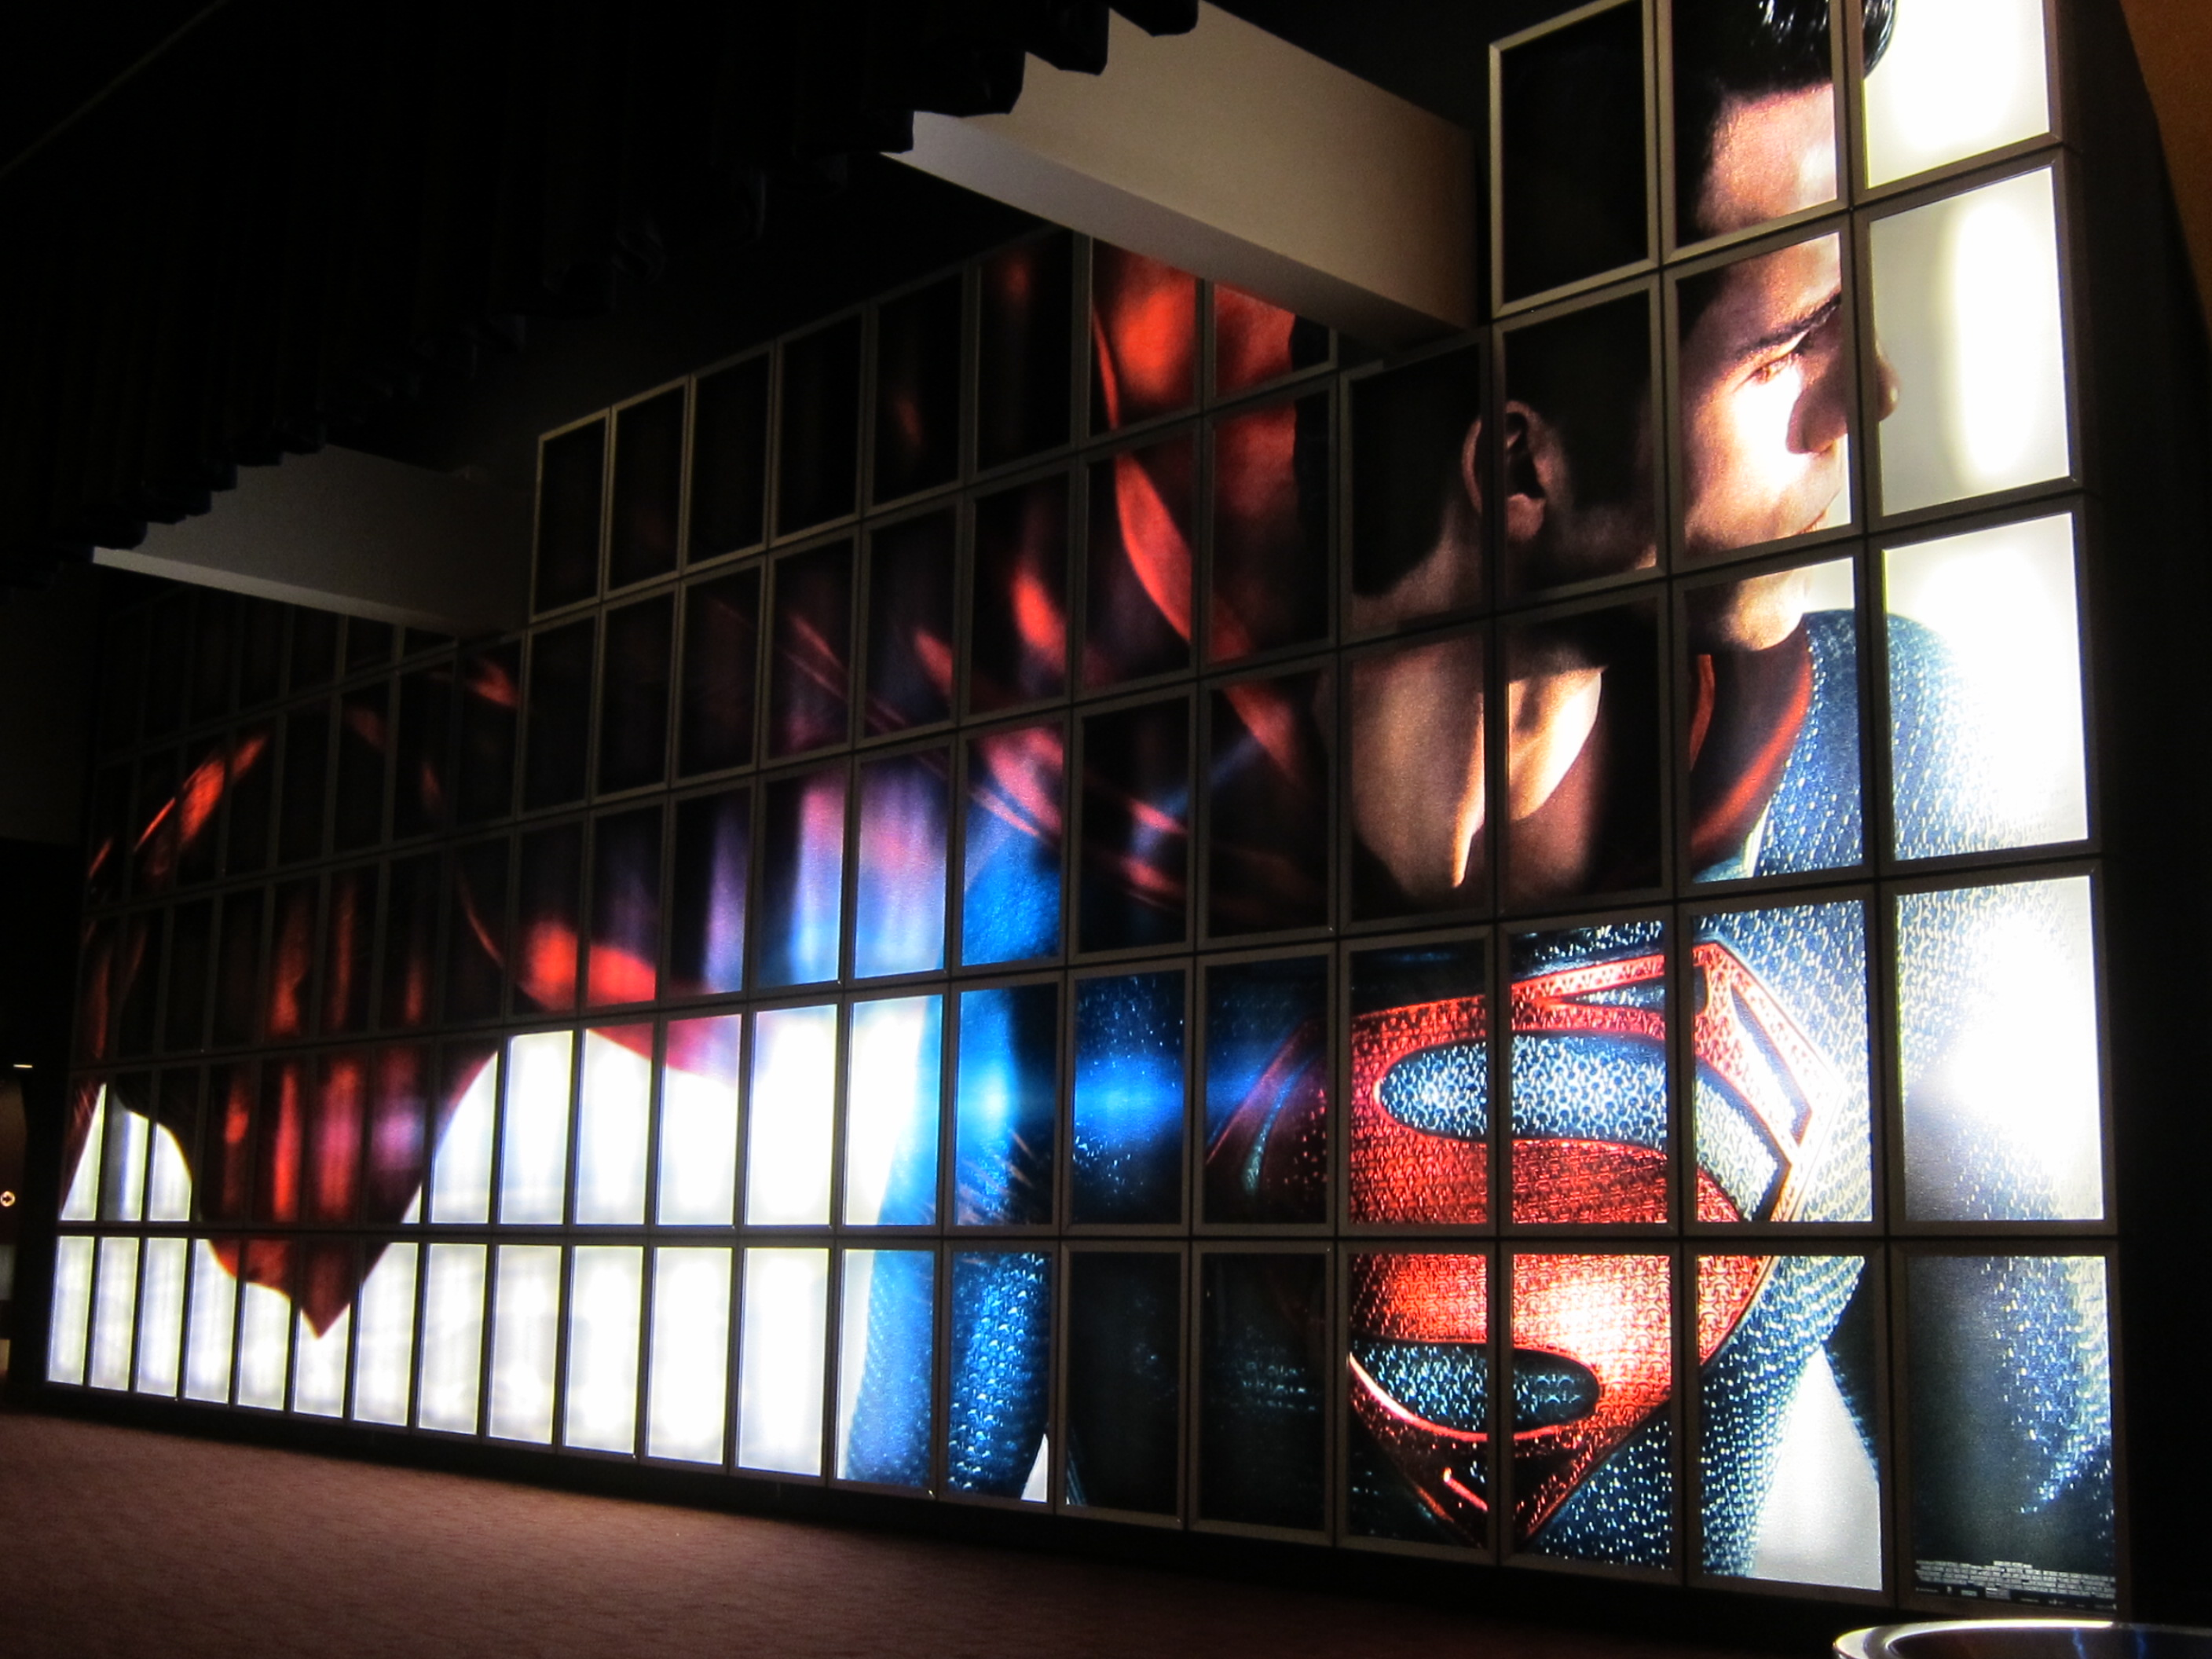 MAN OF STEEL backlit wall display at the ArcLight Sherman Oaks.